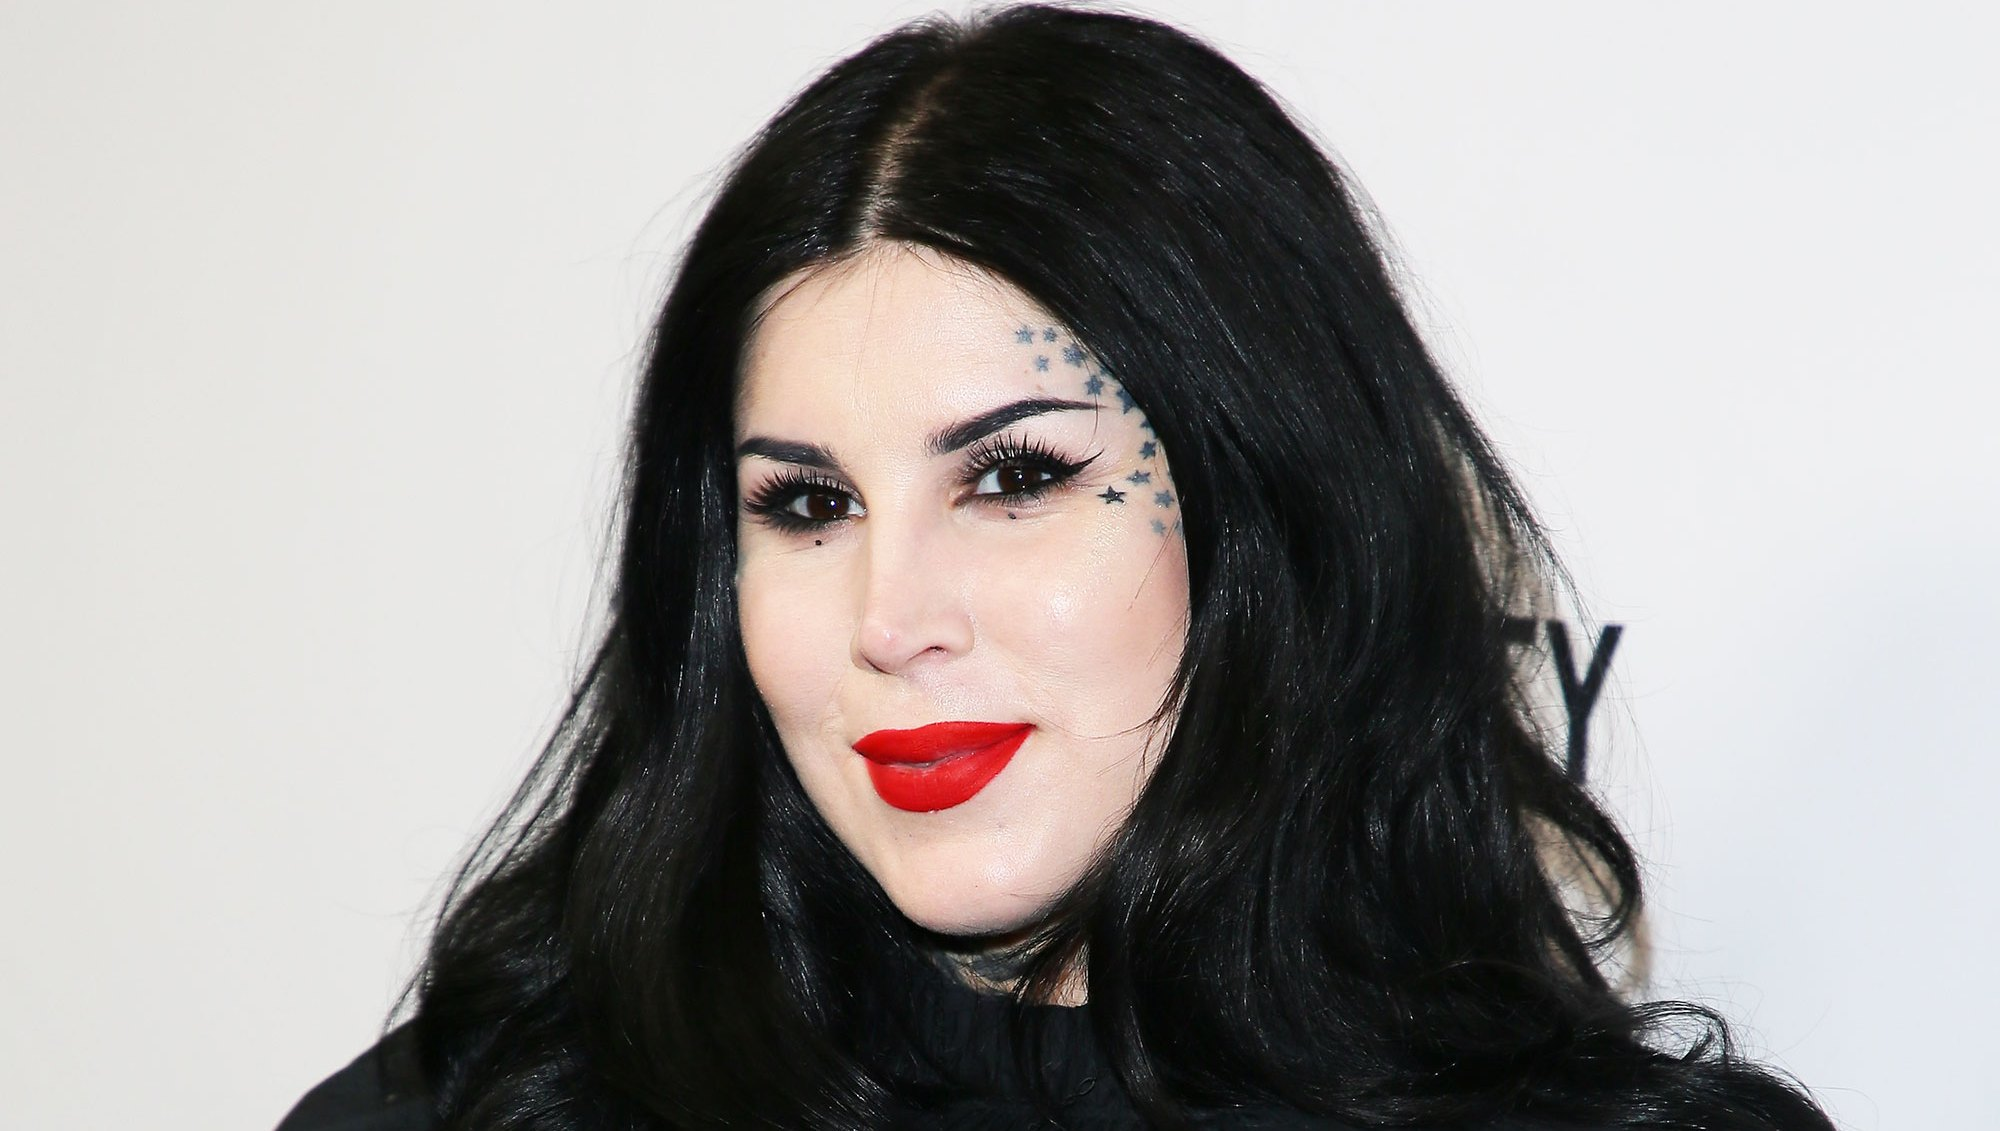 Unrecognizable Kat Von D Breast-Feeds Her Baby in Sweet Video